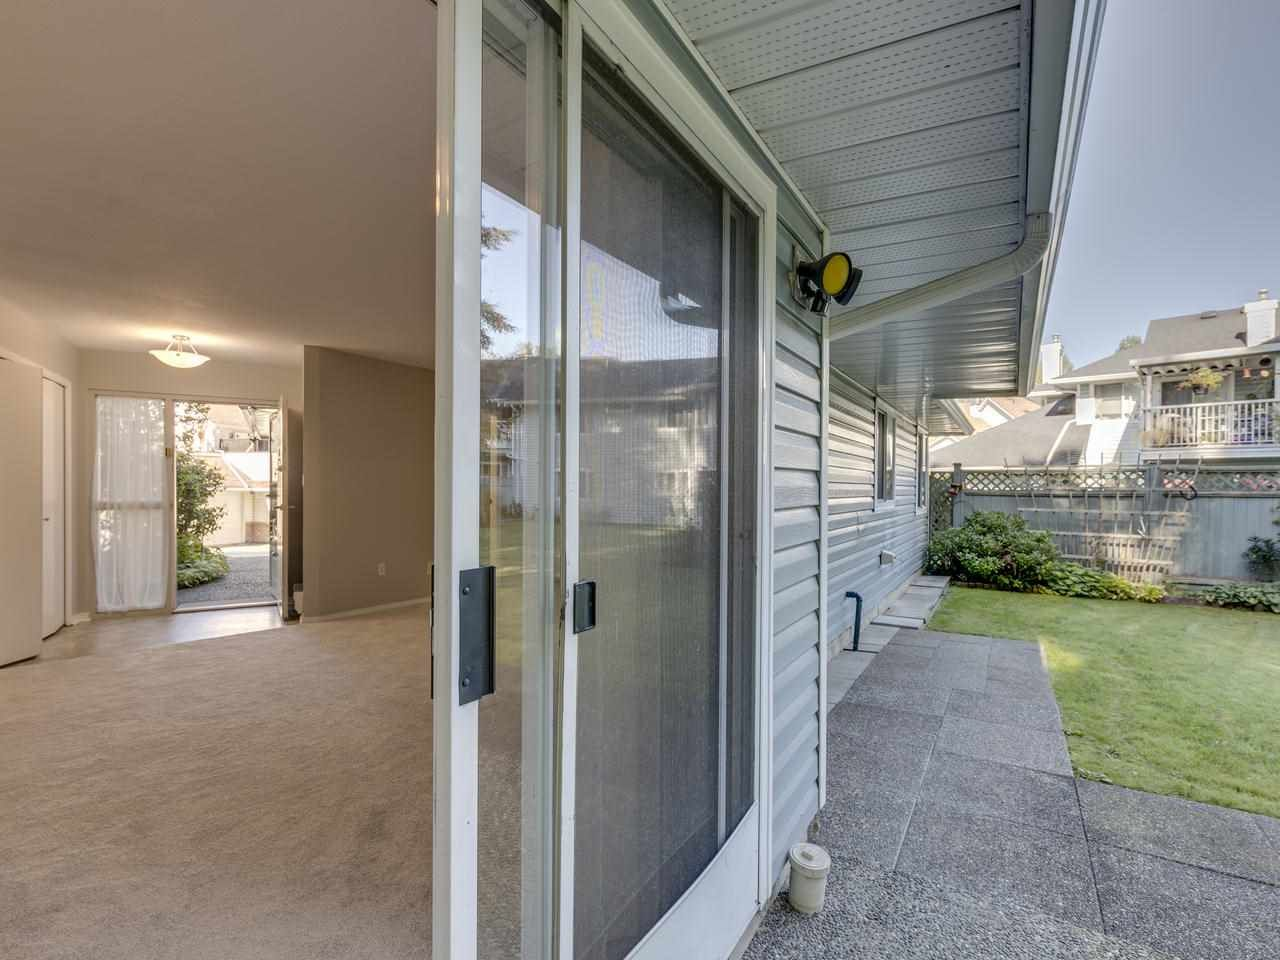 """Photo 8: Photos: 127 22555 116 Avenue in Maple Ridge: East Central Townhouse for sale in """"HILLSIDE"""" : MLS®# R2493046"""